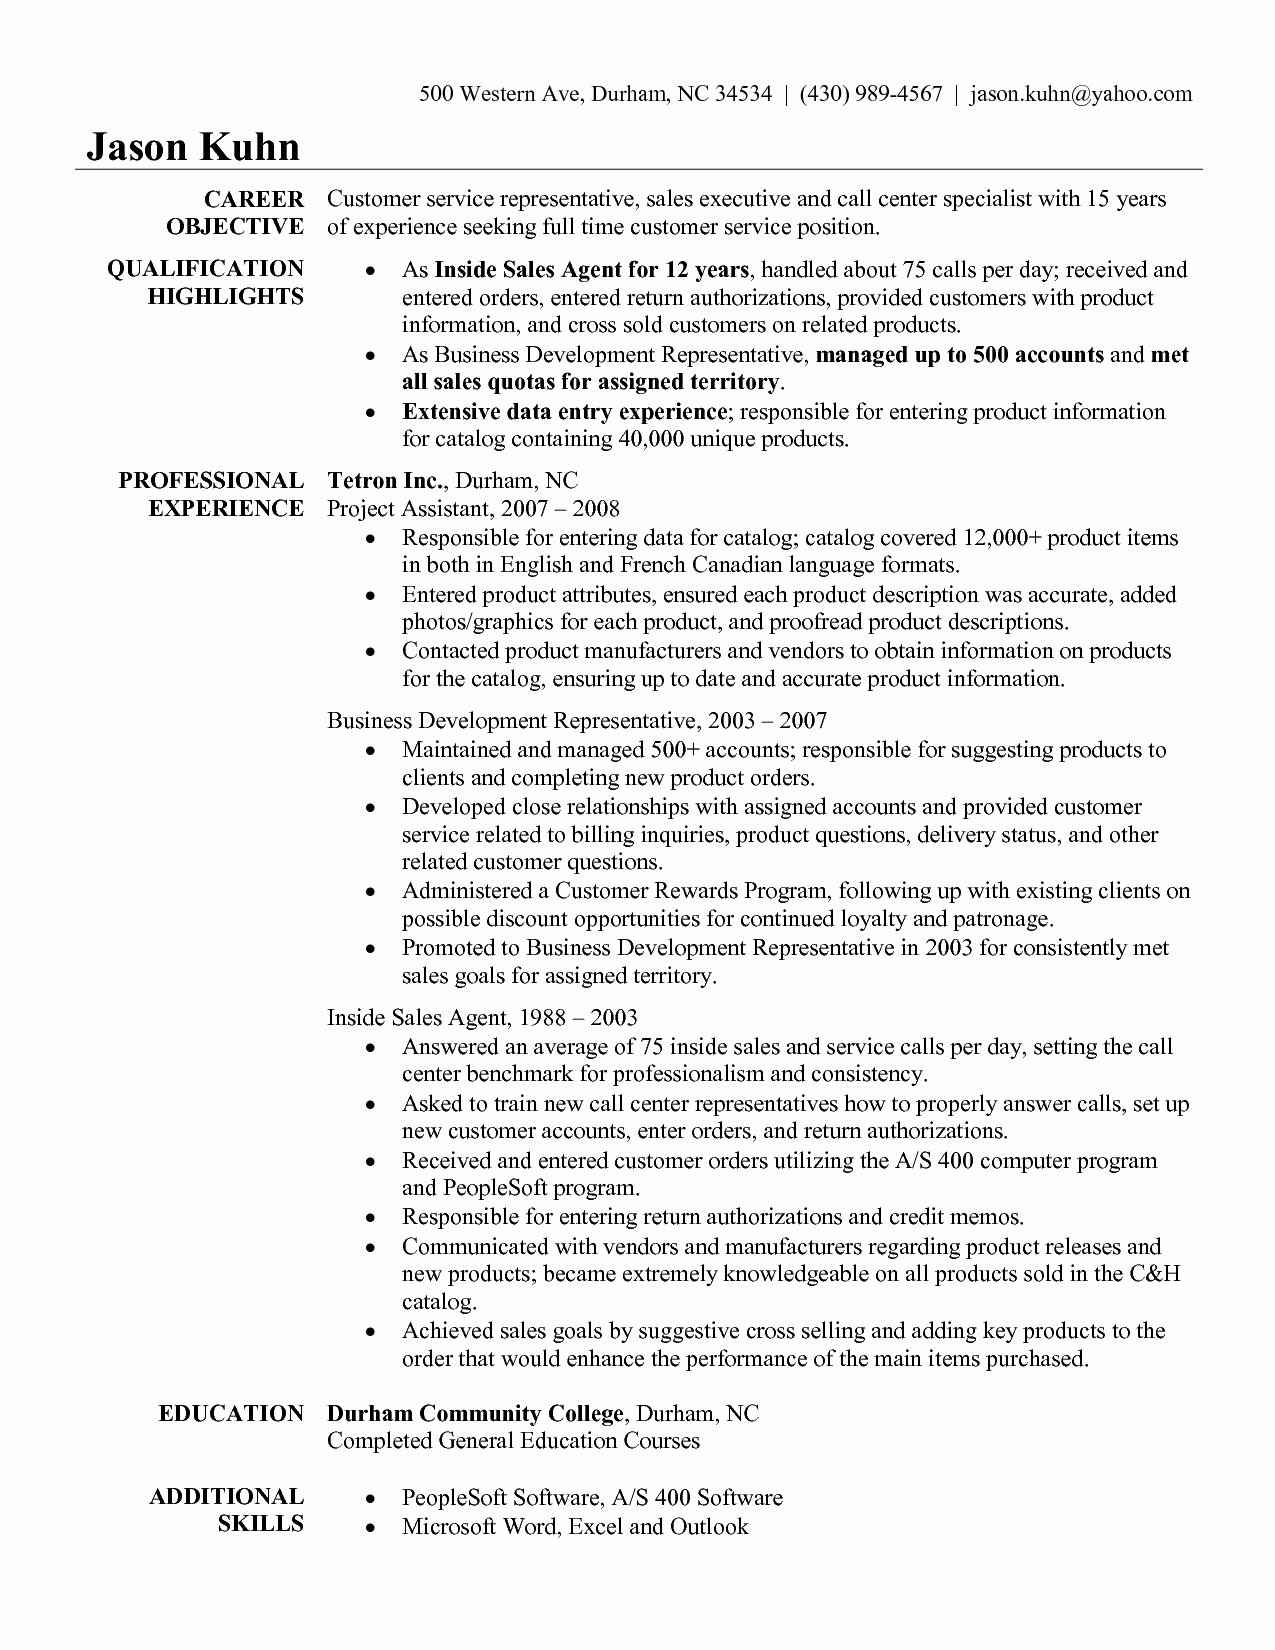 Patient Service Representative Resume Template